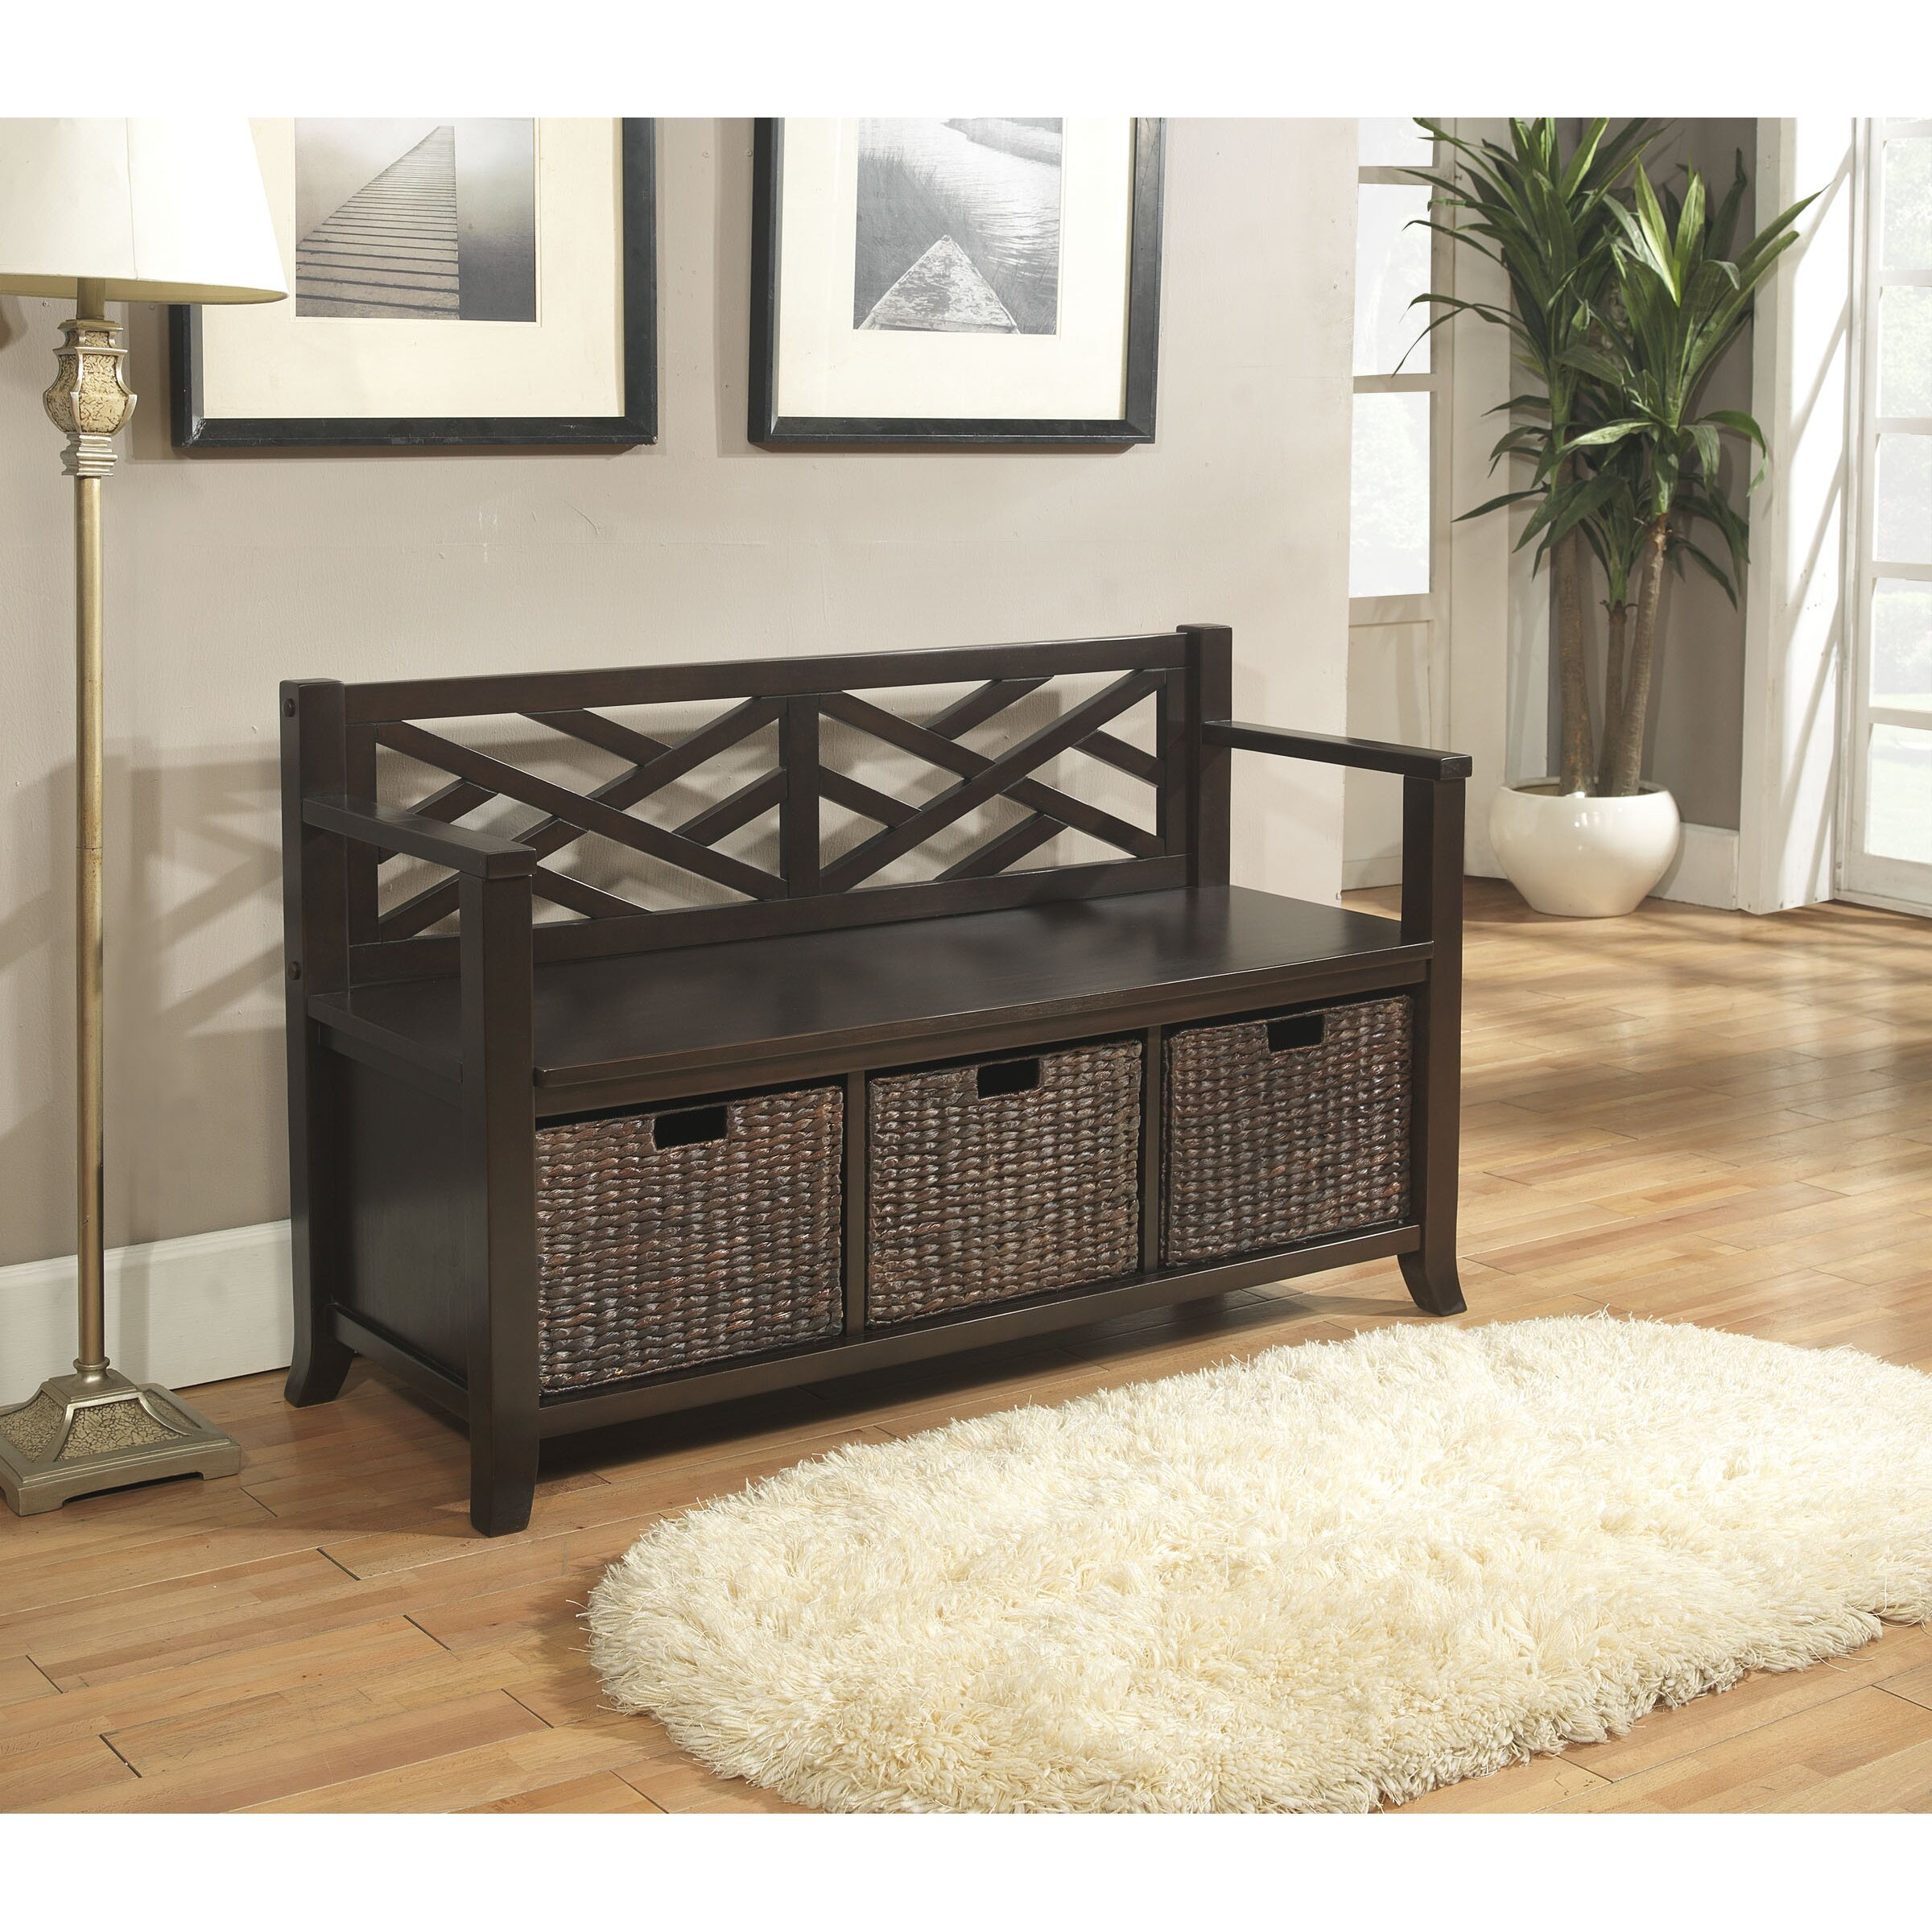 Simpli Home Adrien Entryway Storage Bench Reviews Wayfair